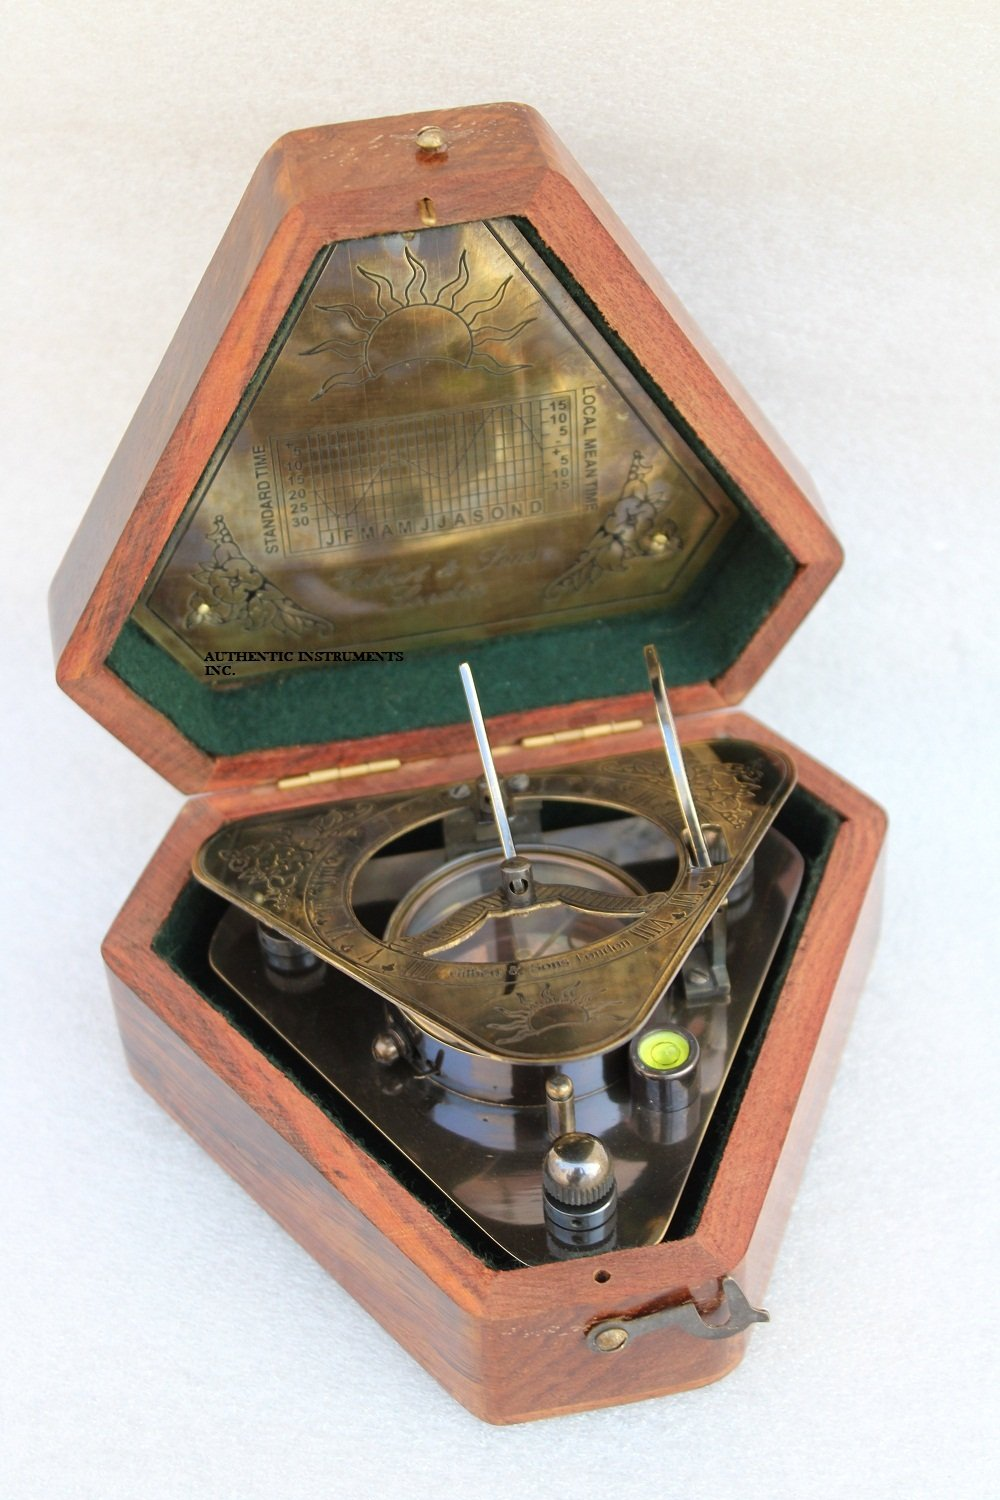 US Handicrafts History Brass Triangle Sundial Compass in Hardwood Box. by US Handicrafts (Image #8)